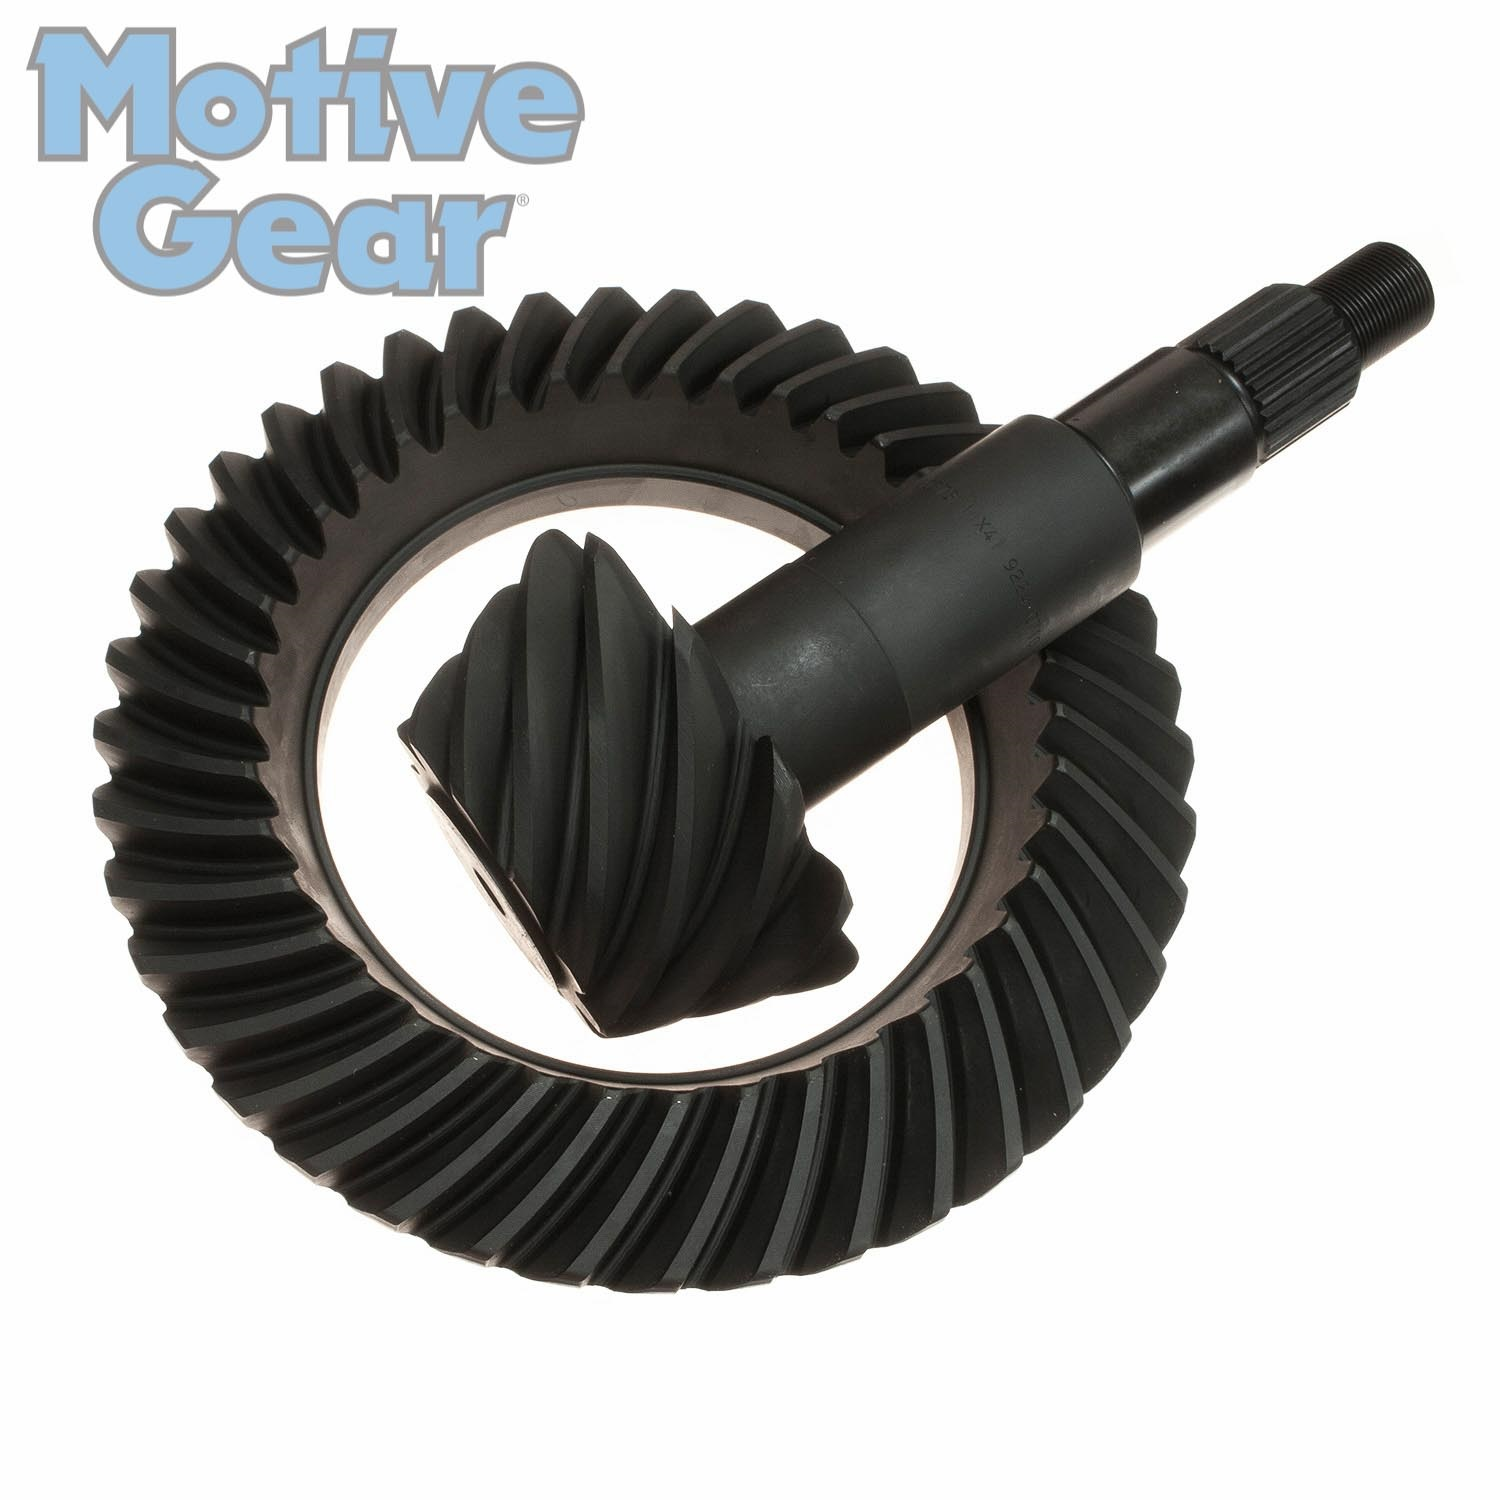 Motive Gear AM20-456 MOGAM20-456 R&P 4.56 AMC MODEL 20